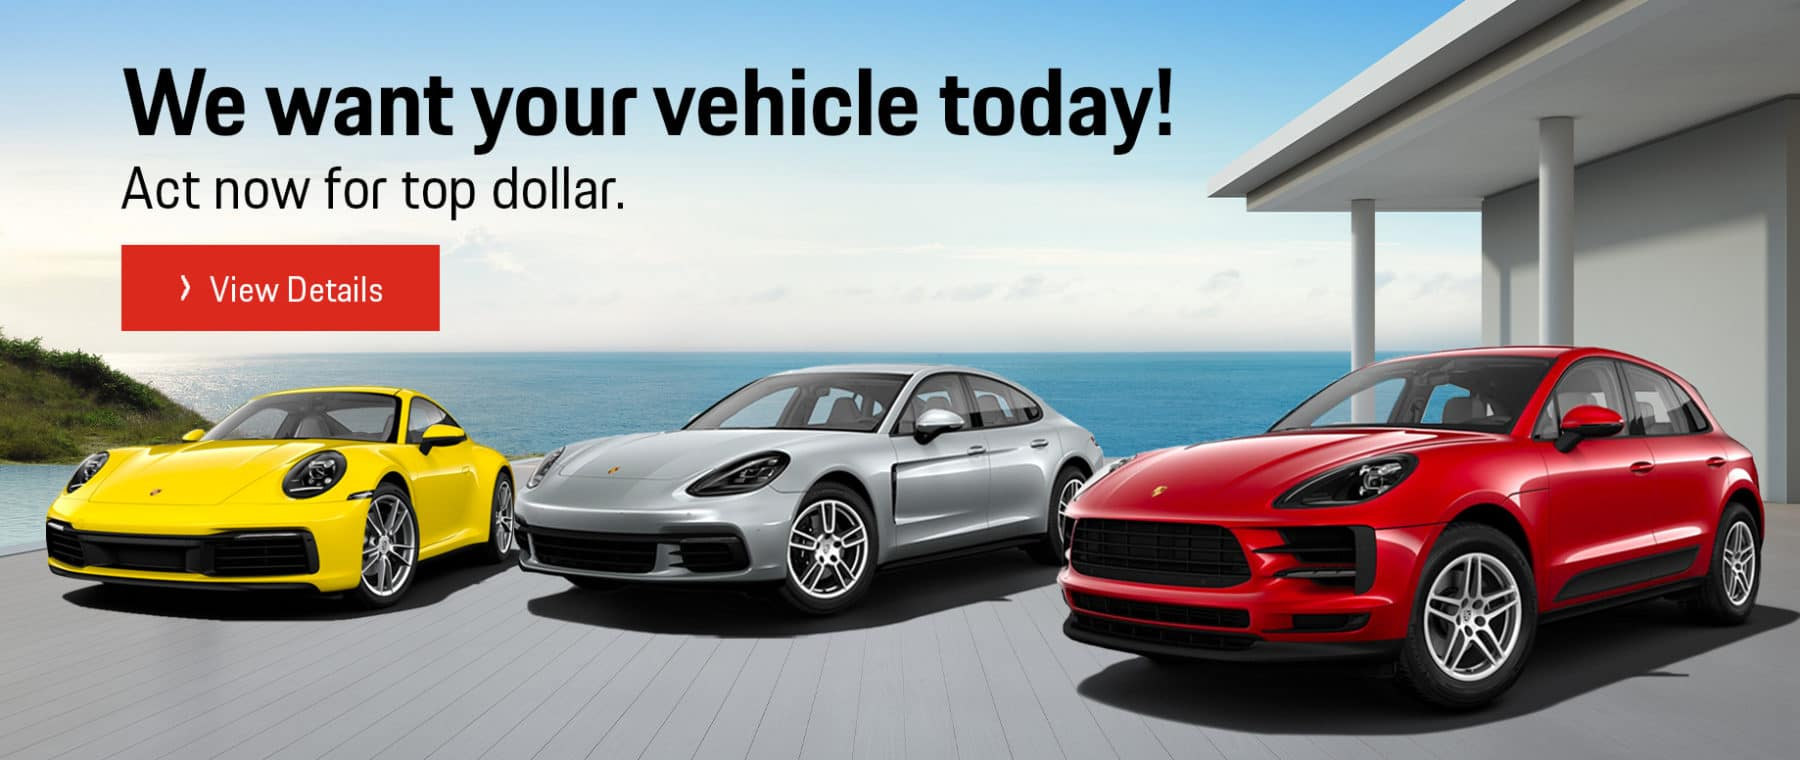 Porsche of Tampa Vehicle Buy Back